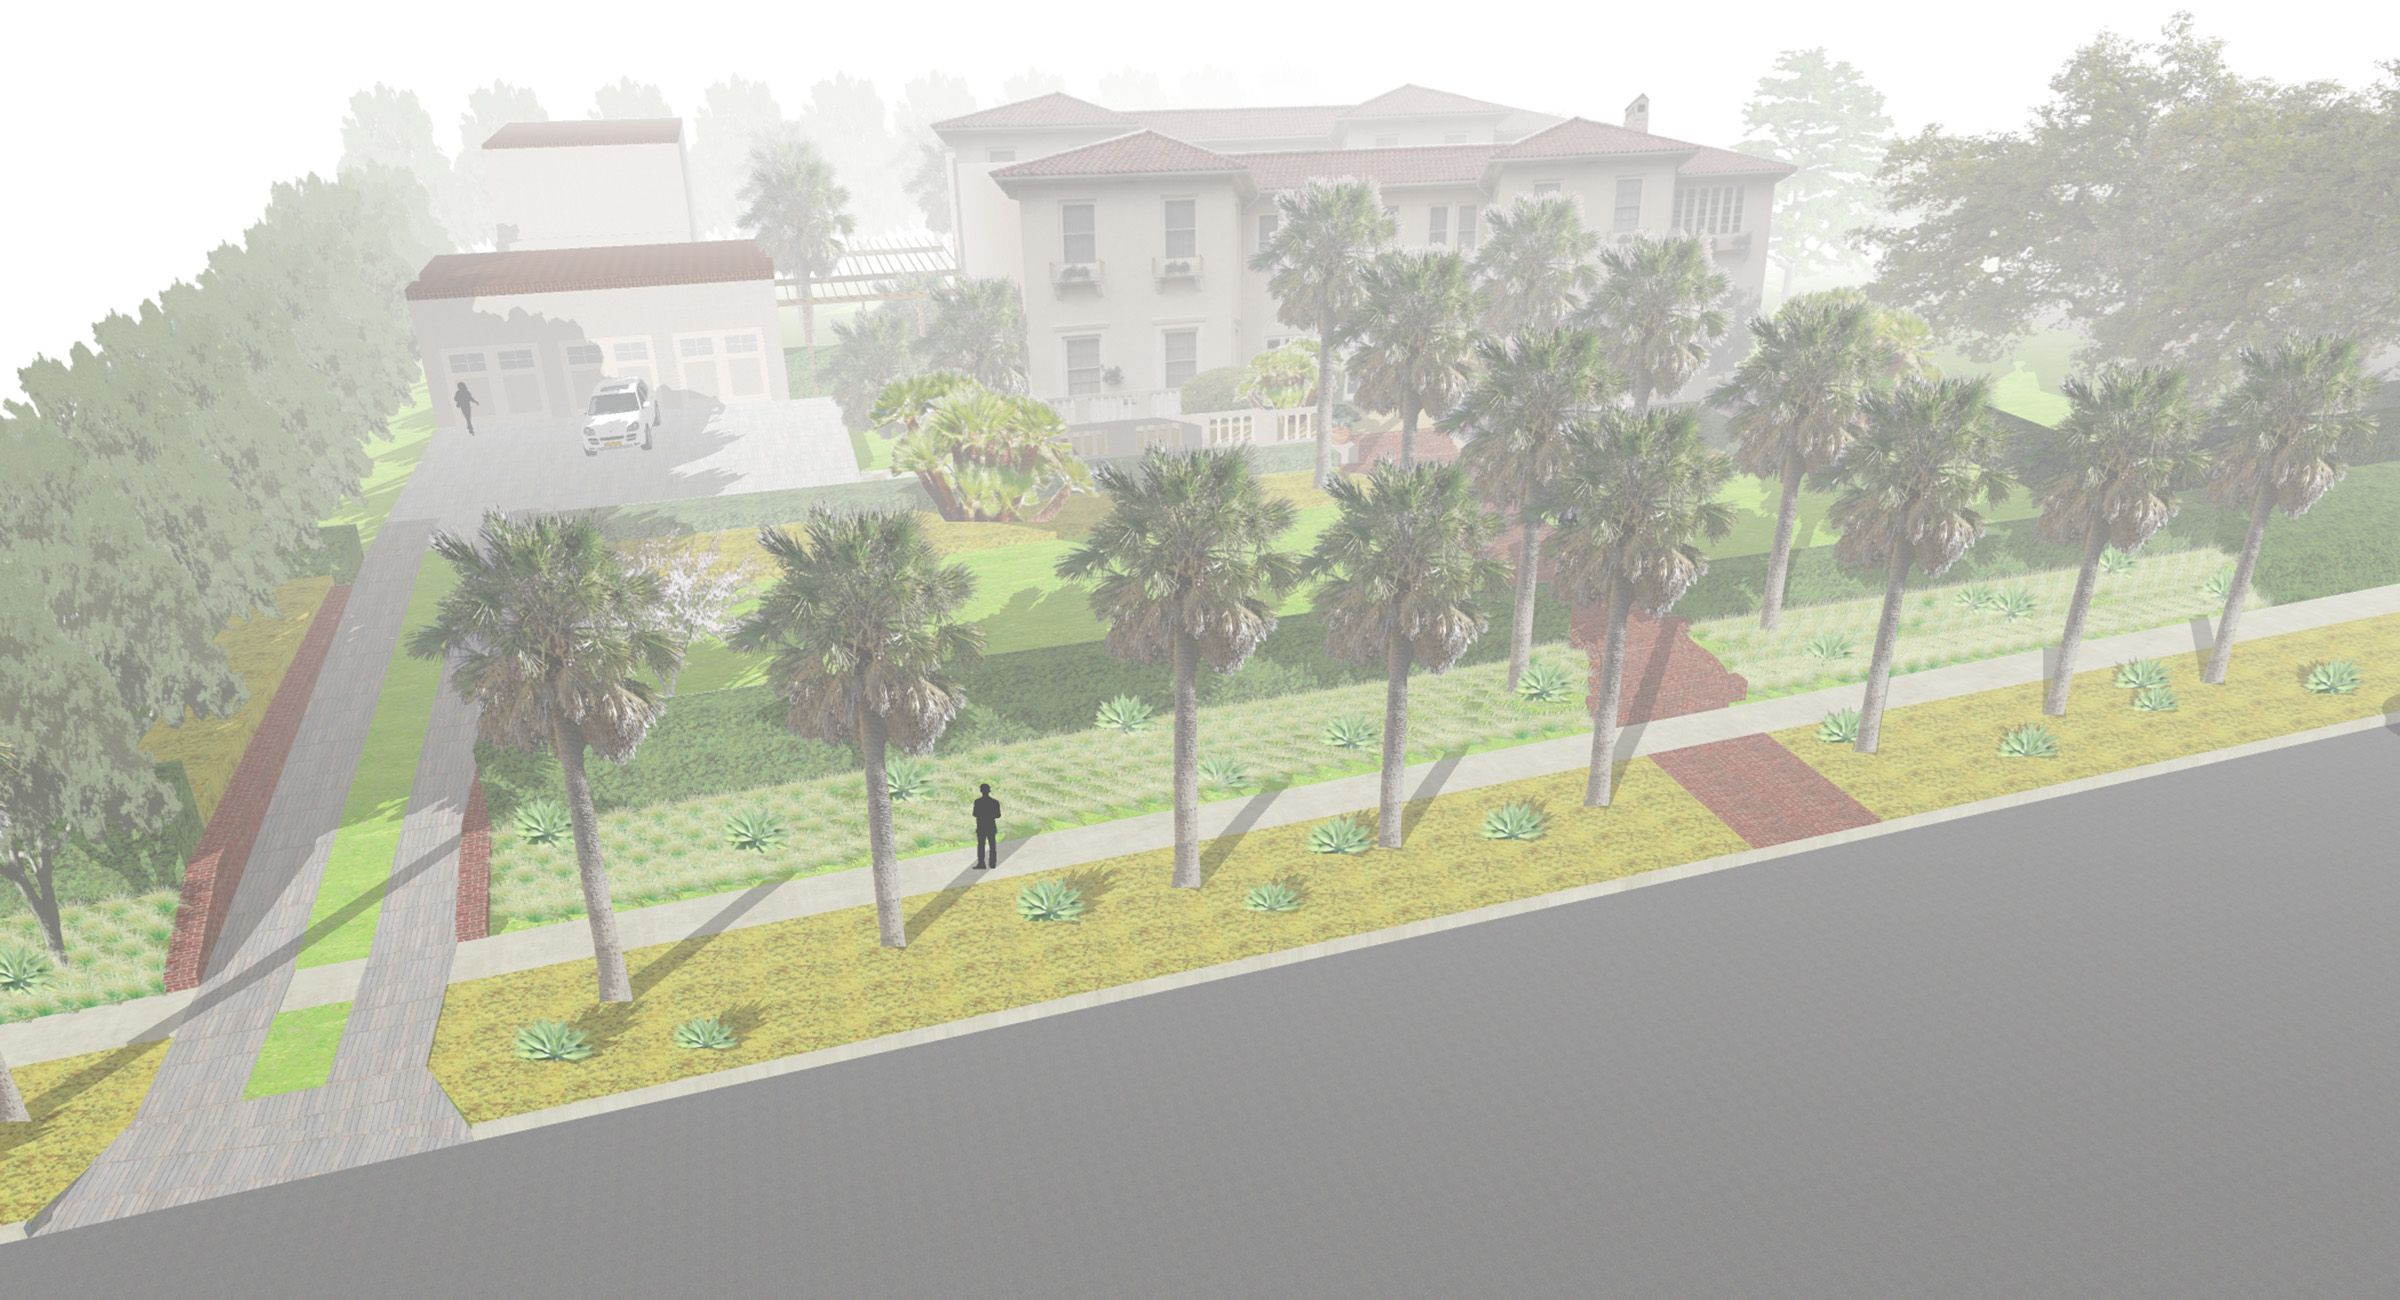 160604 Tres Robles 3D-view 2 revised_web.jpg